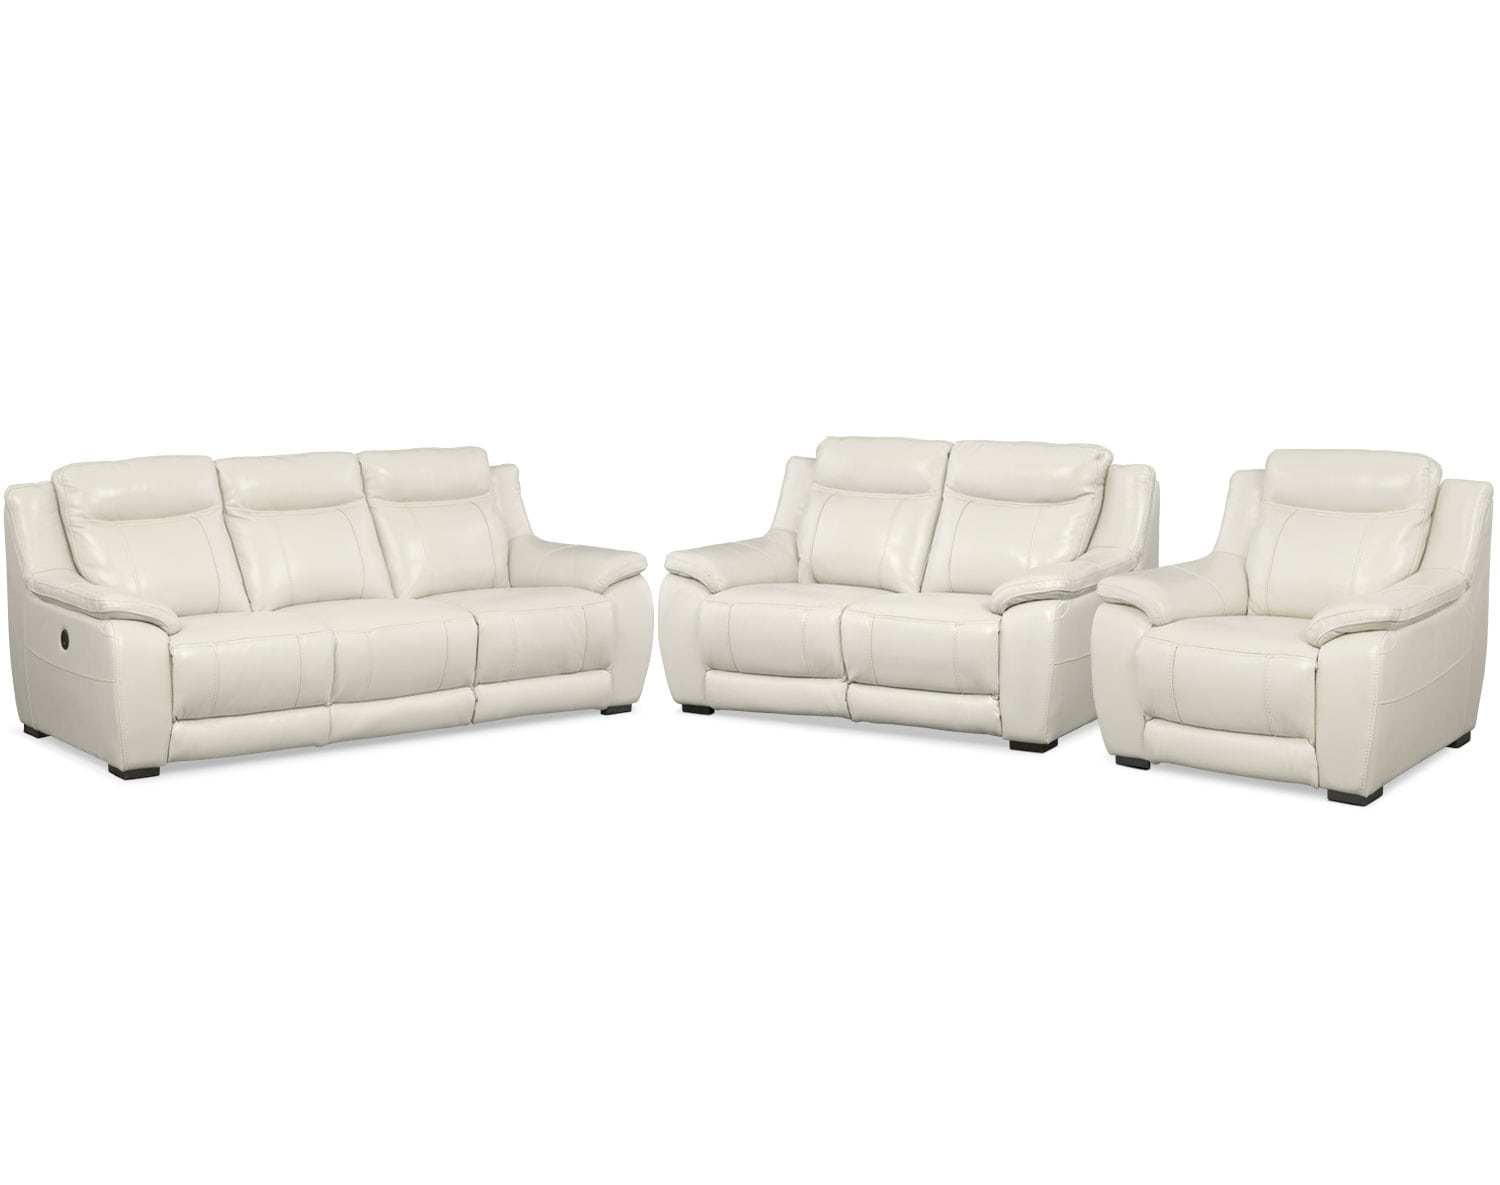 The Lido Ivory Power Reclining Collection